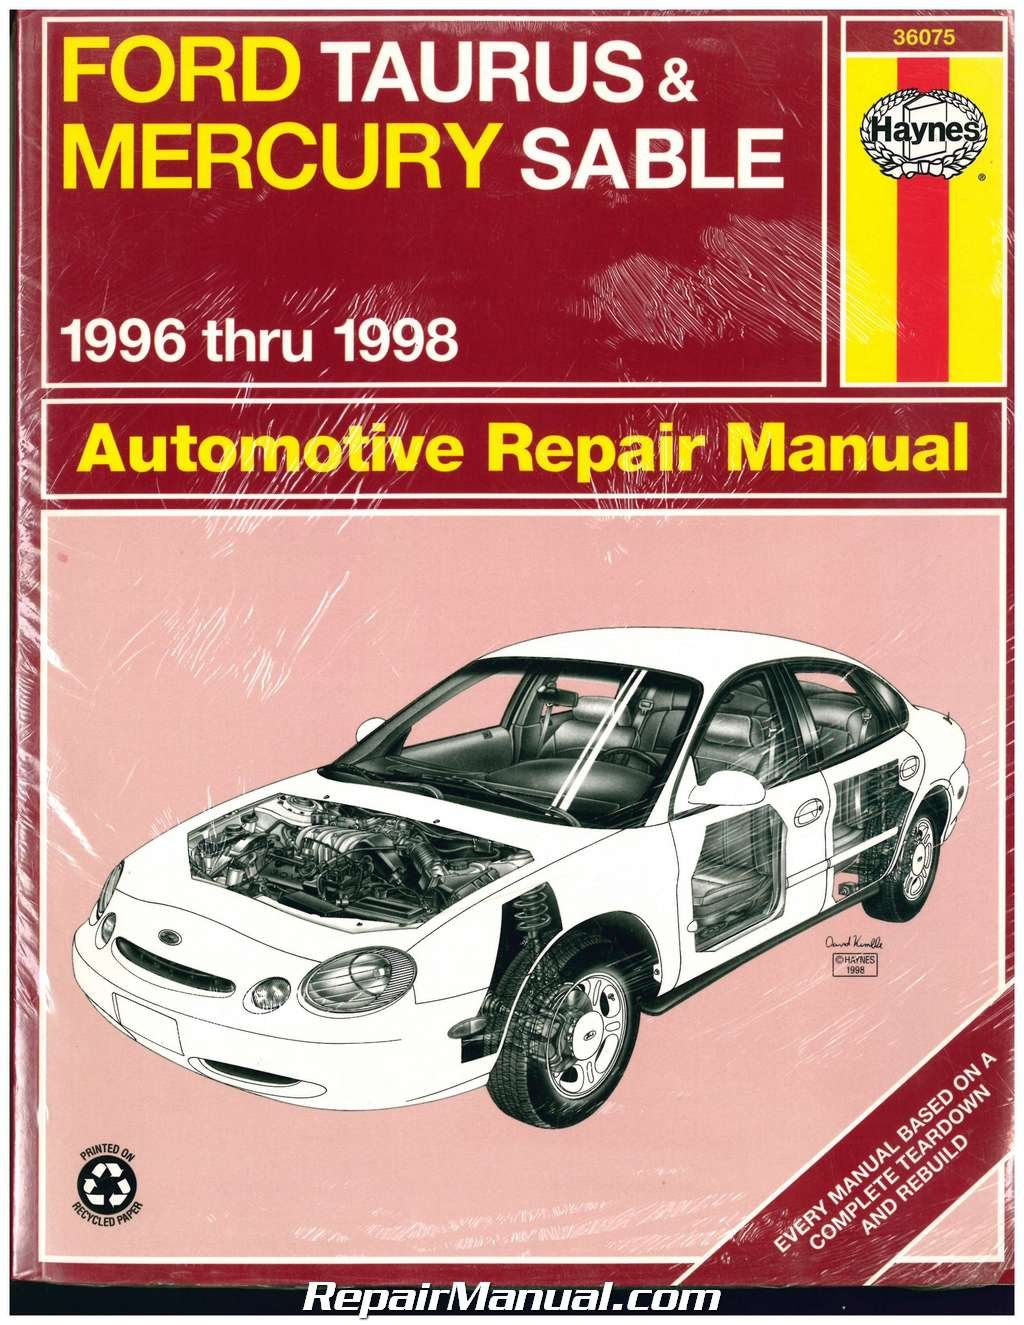 NOS-NOS-H36075 Haynes Ford Taurus Mercury Sable 1996 1997 1998 Ford Repair  Manual: Manufacturer: Amazon.com: Books